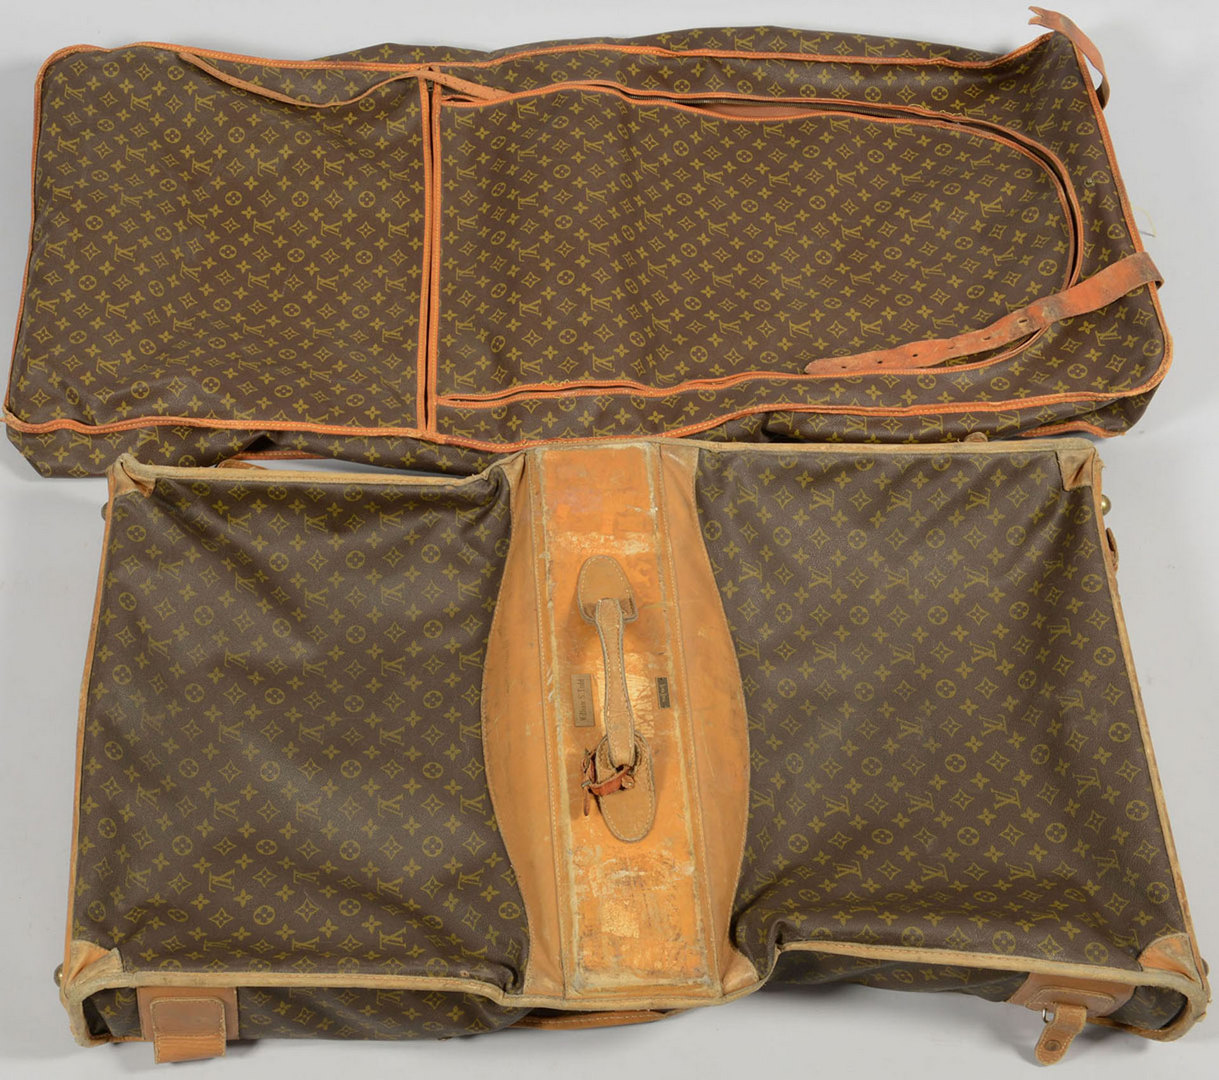 Lot 708: 4 Pieces of Louis Vuitton Luggage